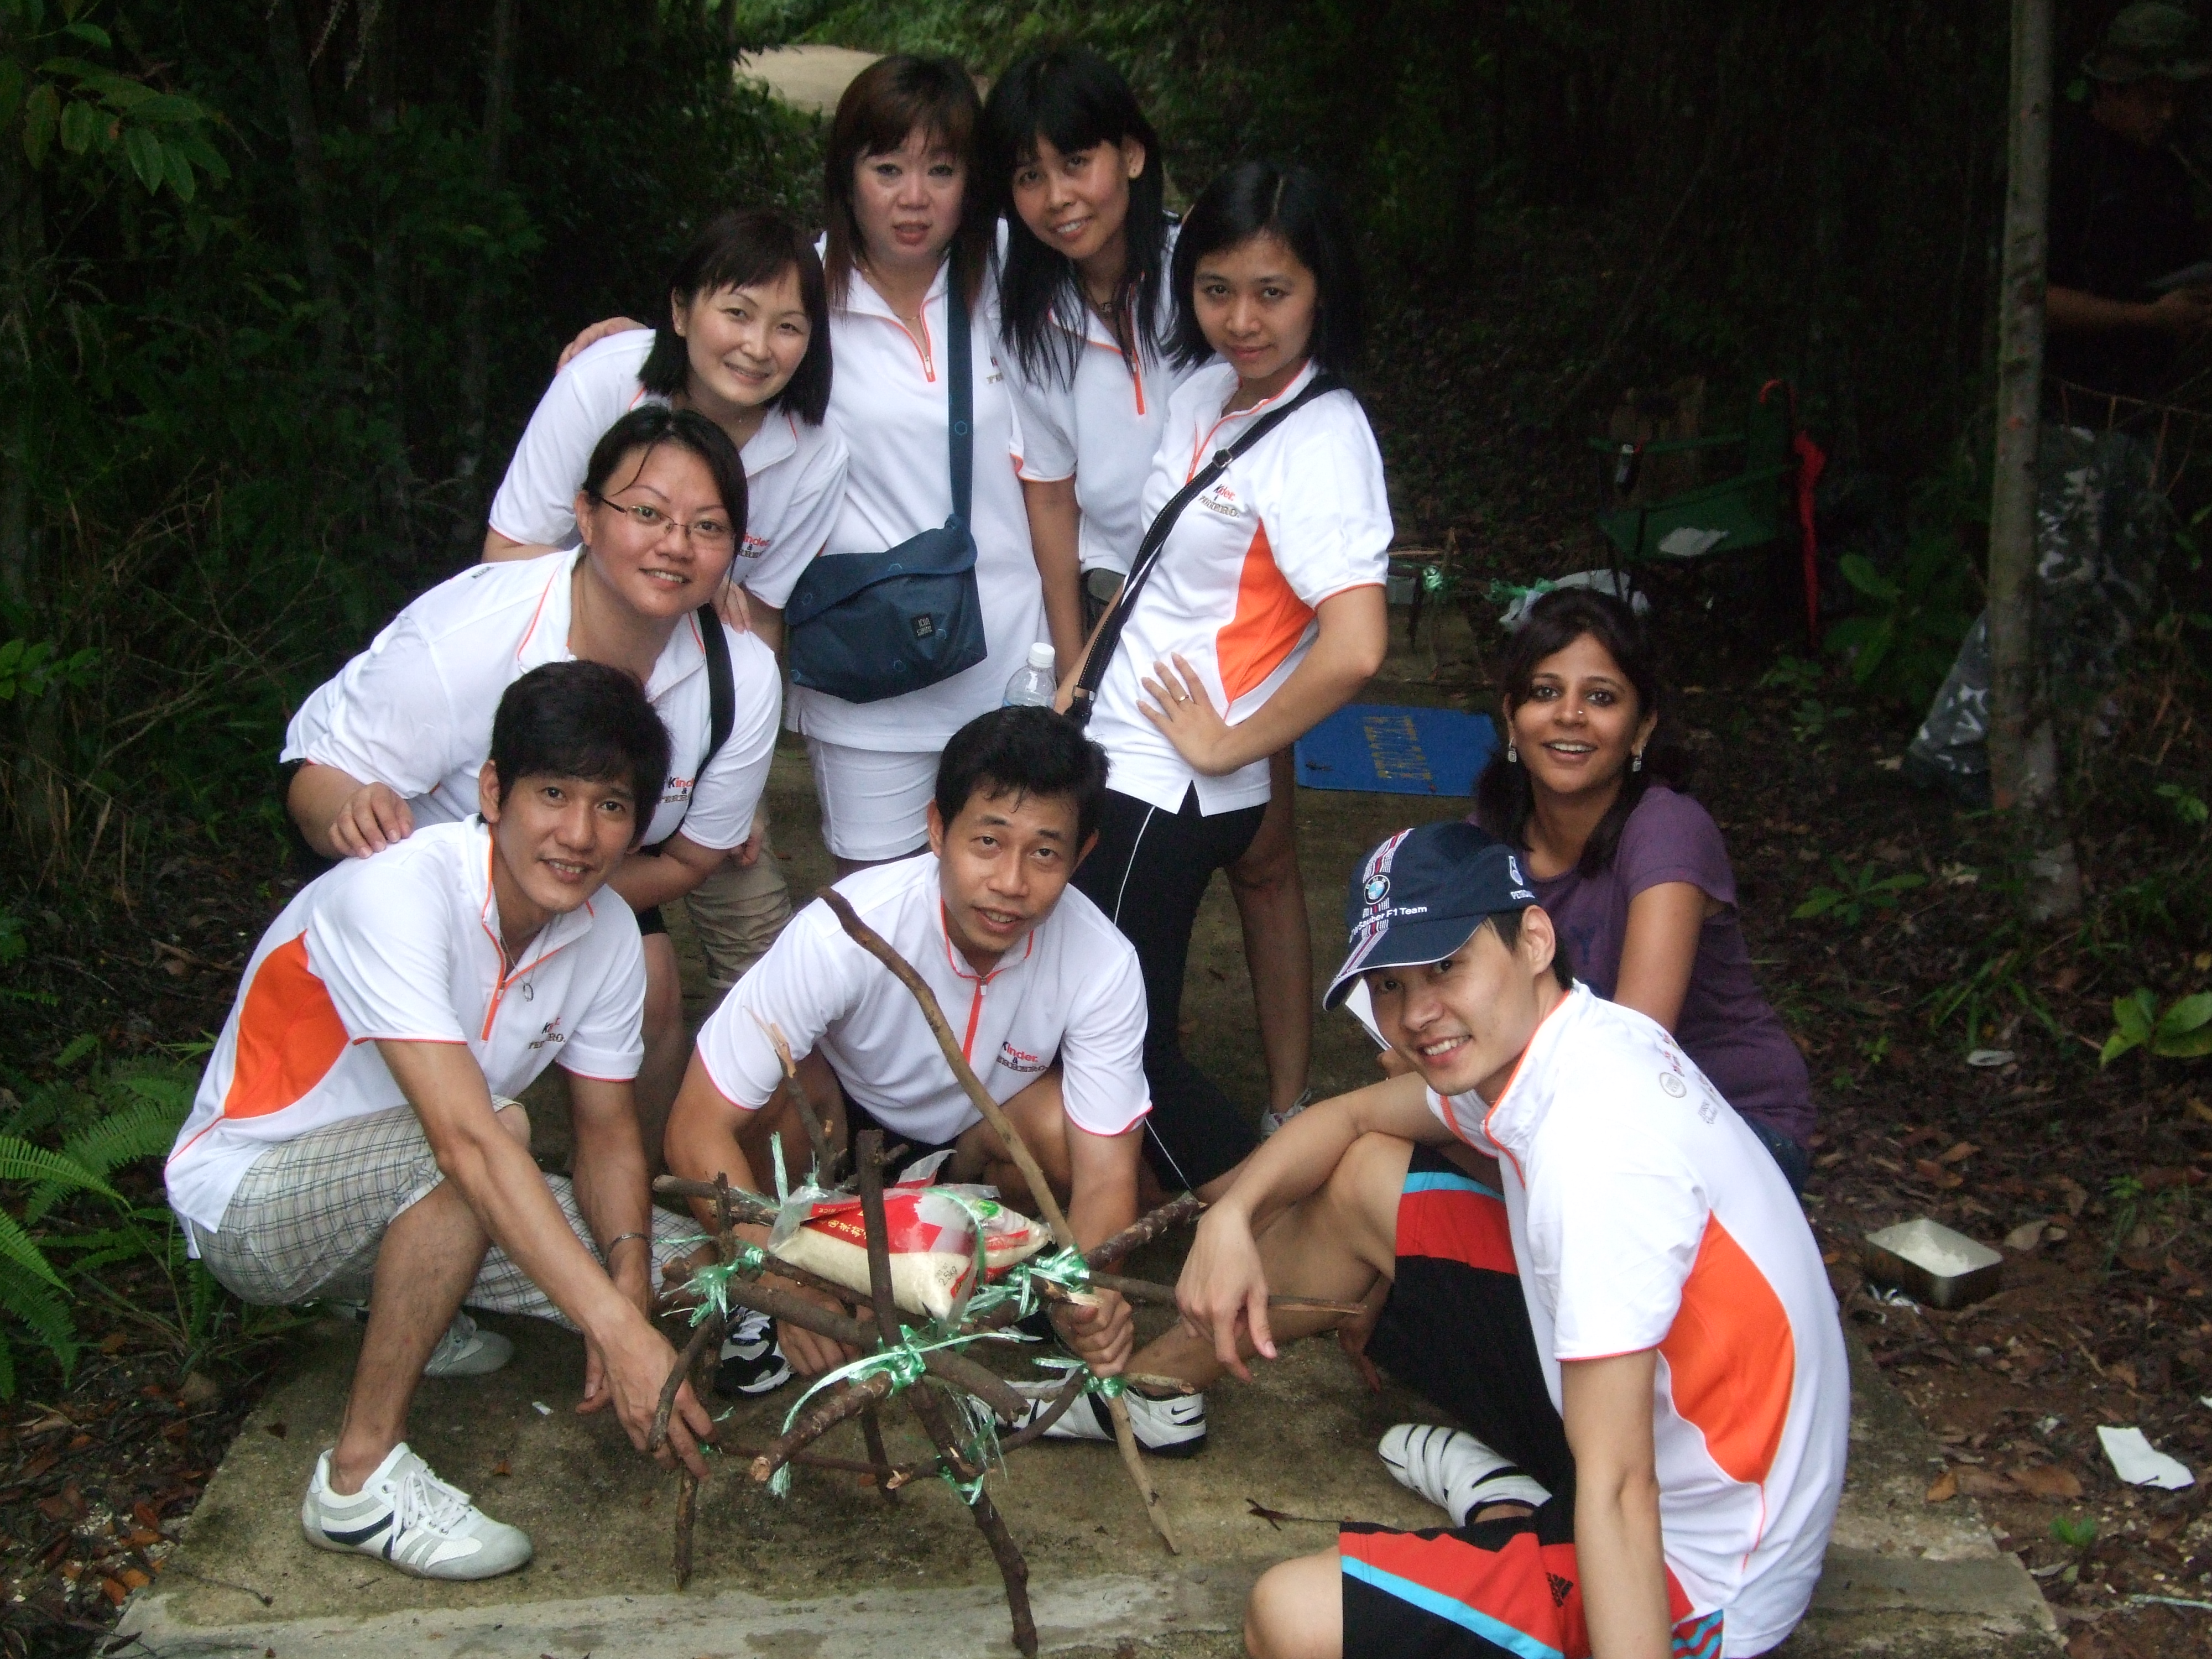 Fire building station for survivor team building activity for corporate groups